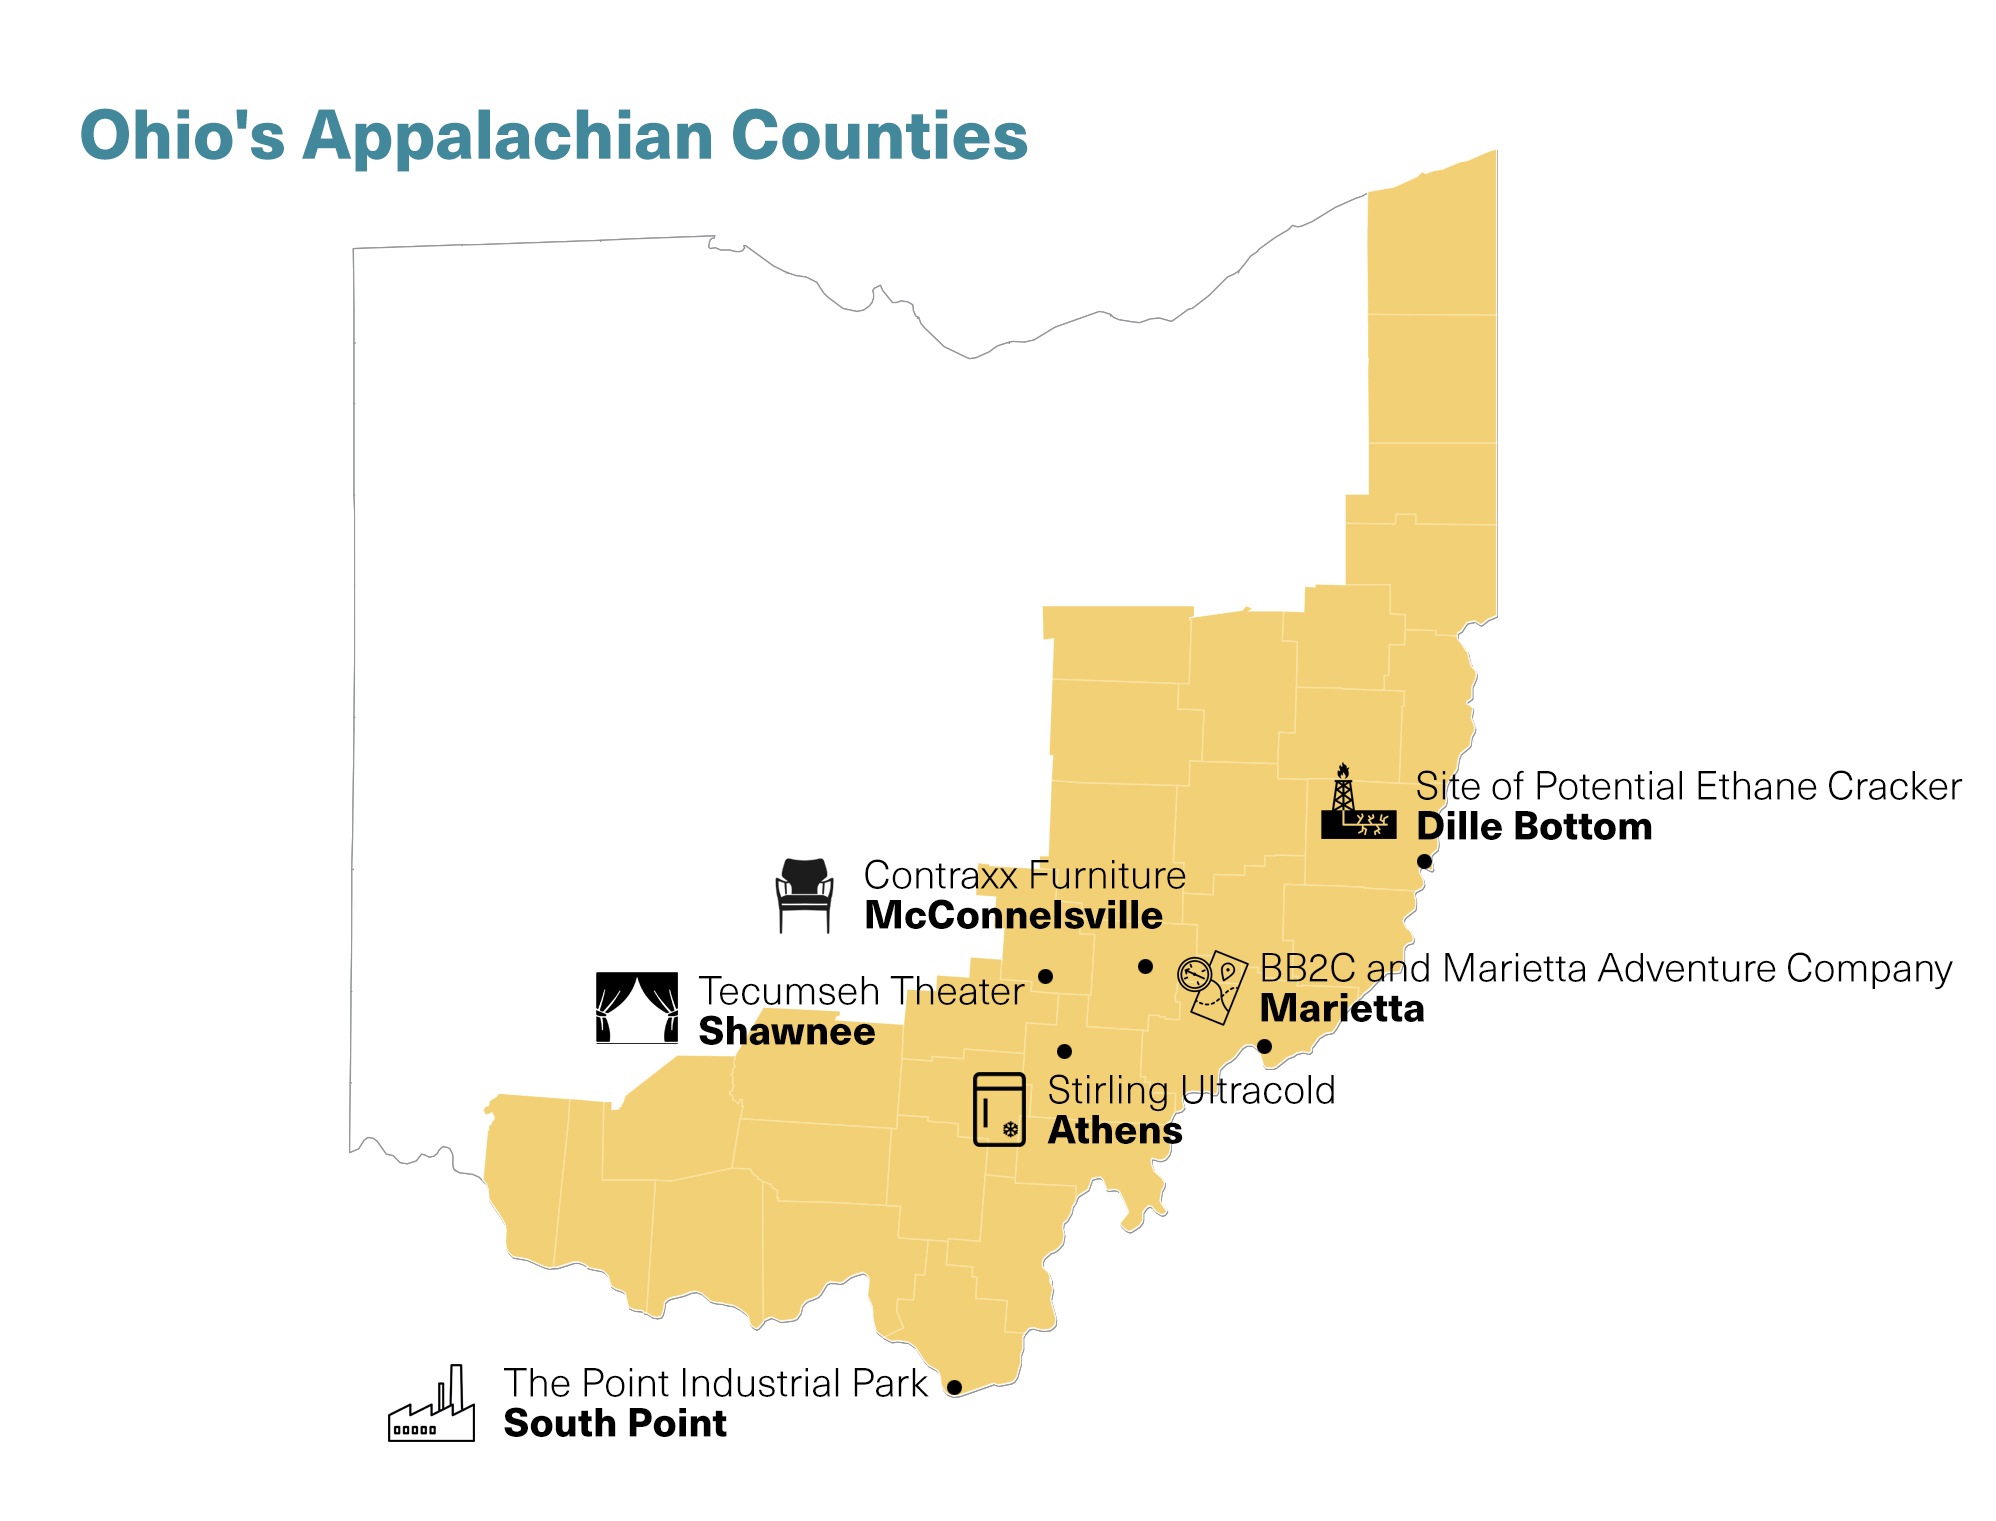 Can Appalachian Ohio Build a New Economy? | Yale Insights